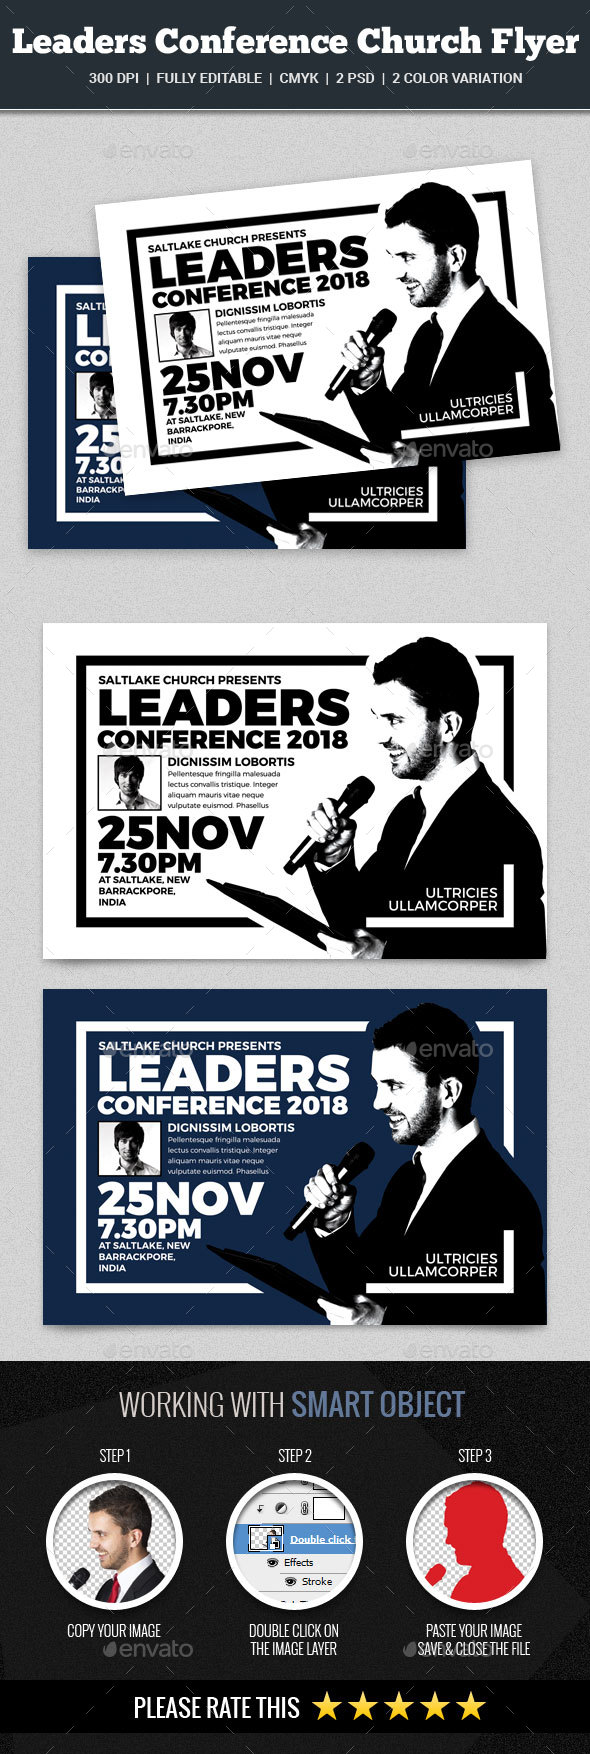 Leaders Conference Church Flyer - Church Flyers